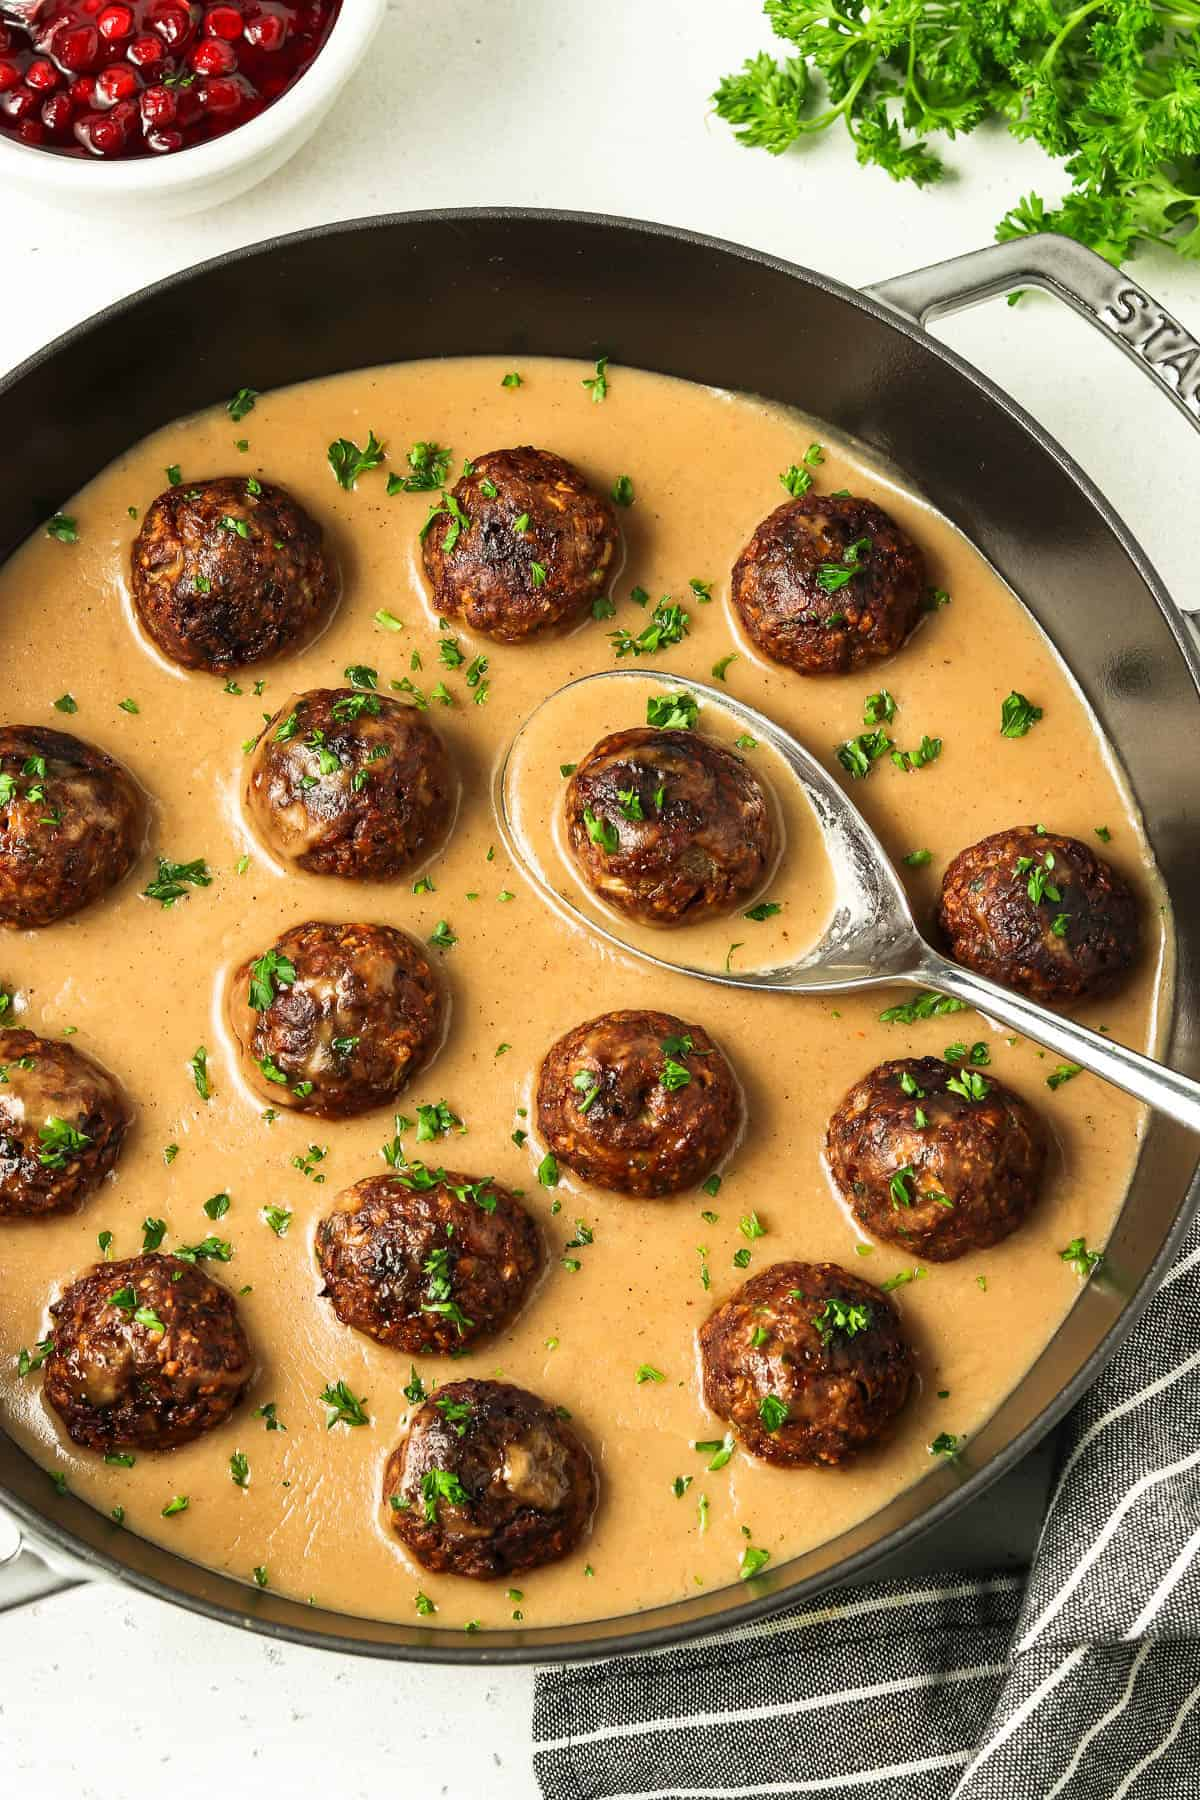 overhead view of fully cooked vegan Swedish meatballs in a gray pan. Serving spoon inside.